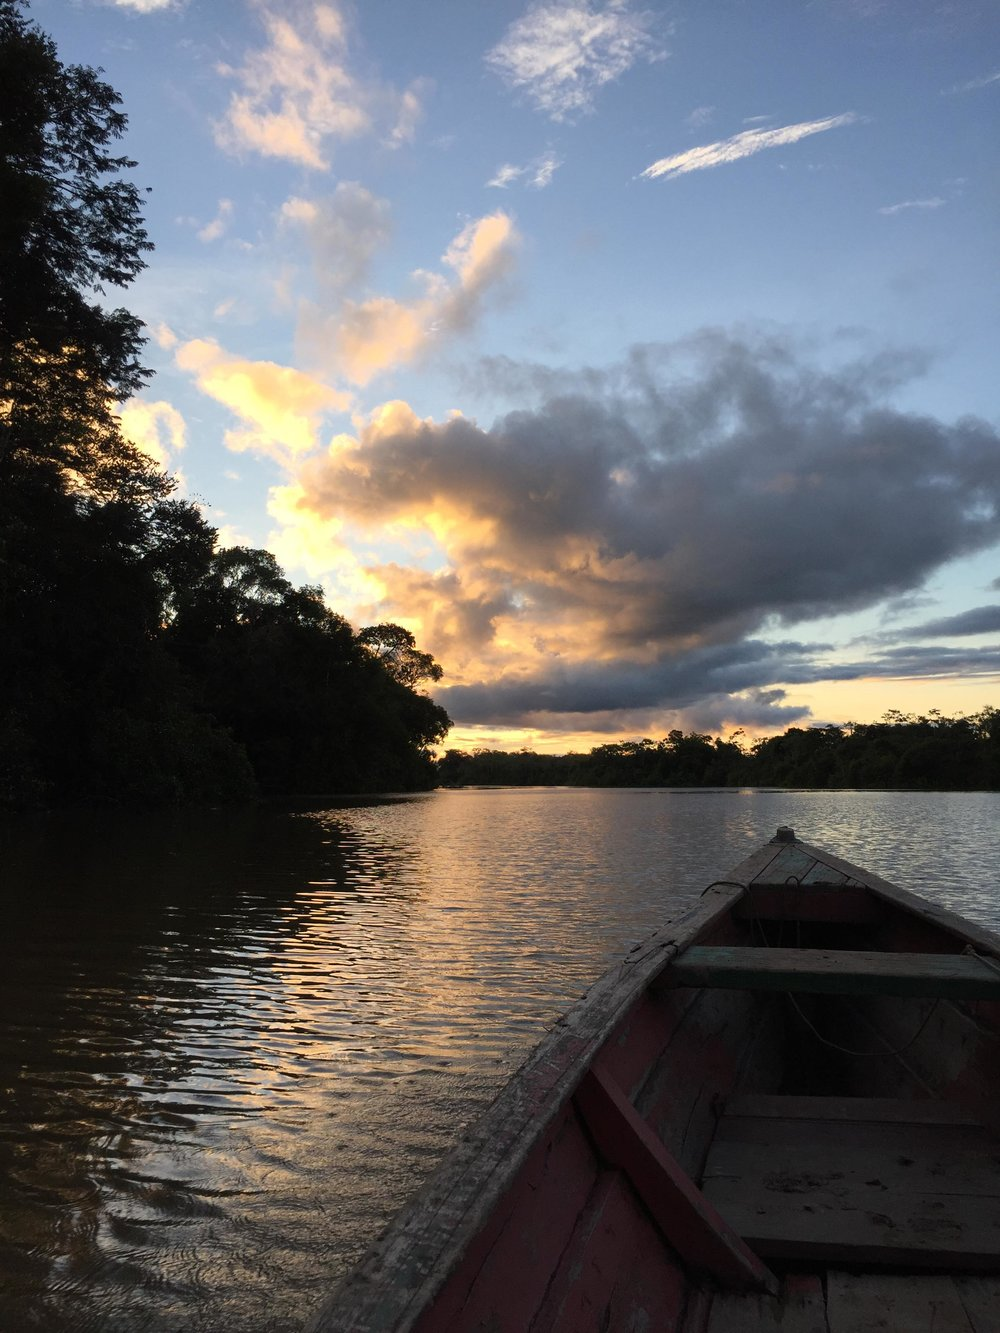 Sunset on the canoe in the Amazon Rainforest.